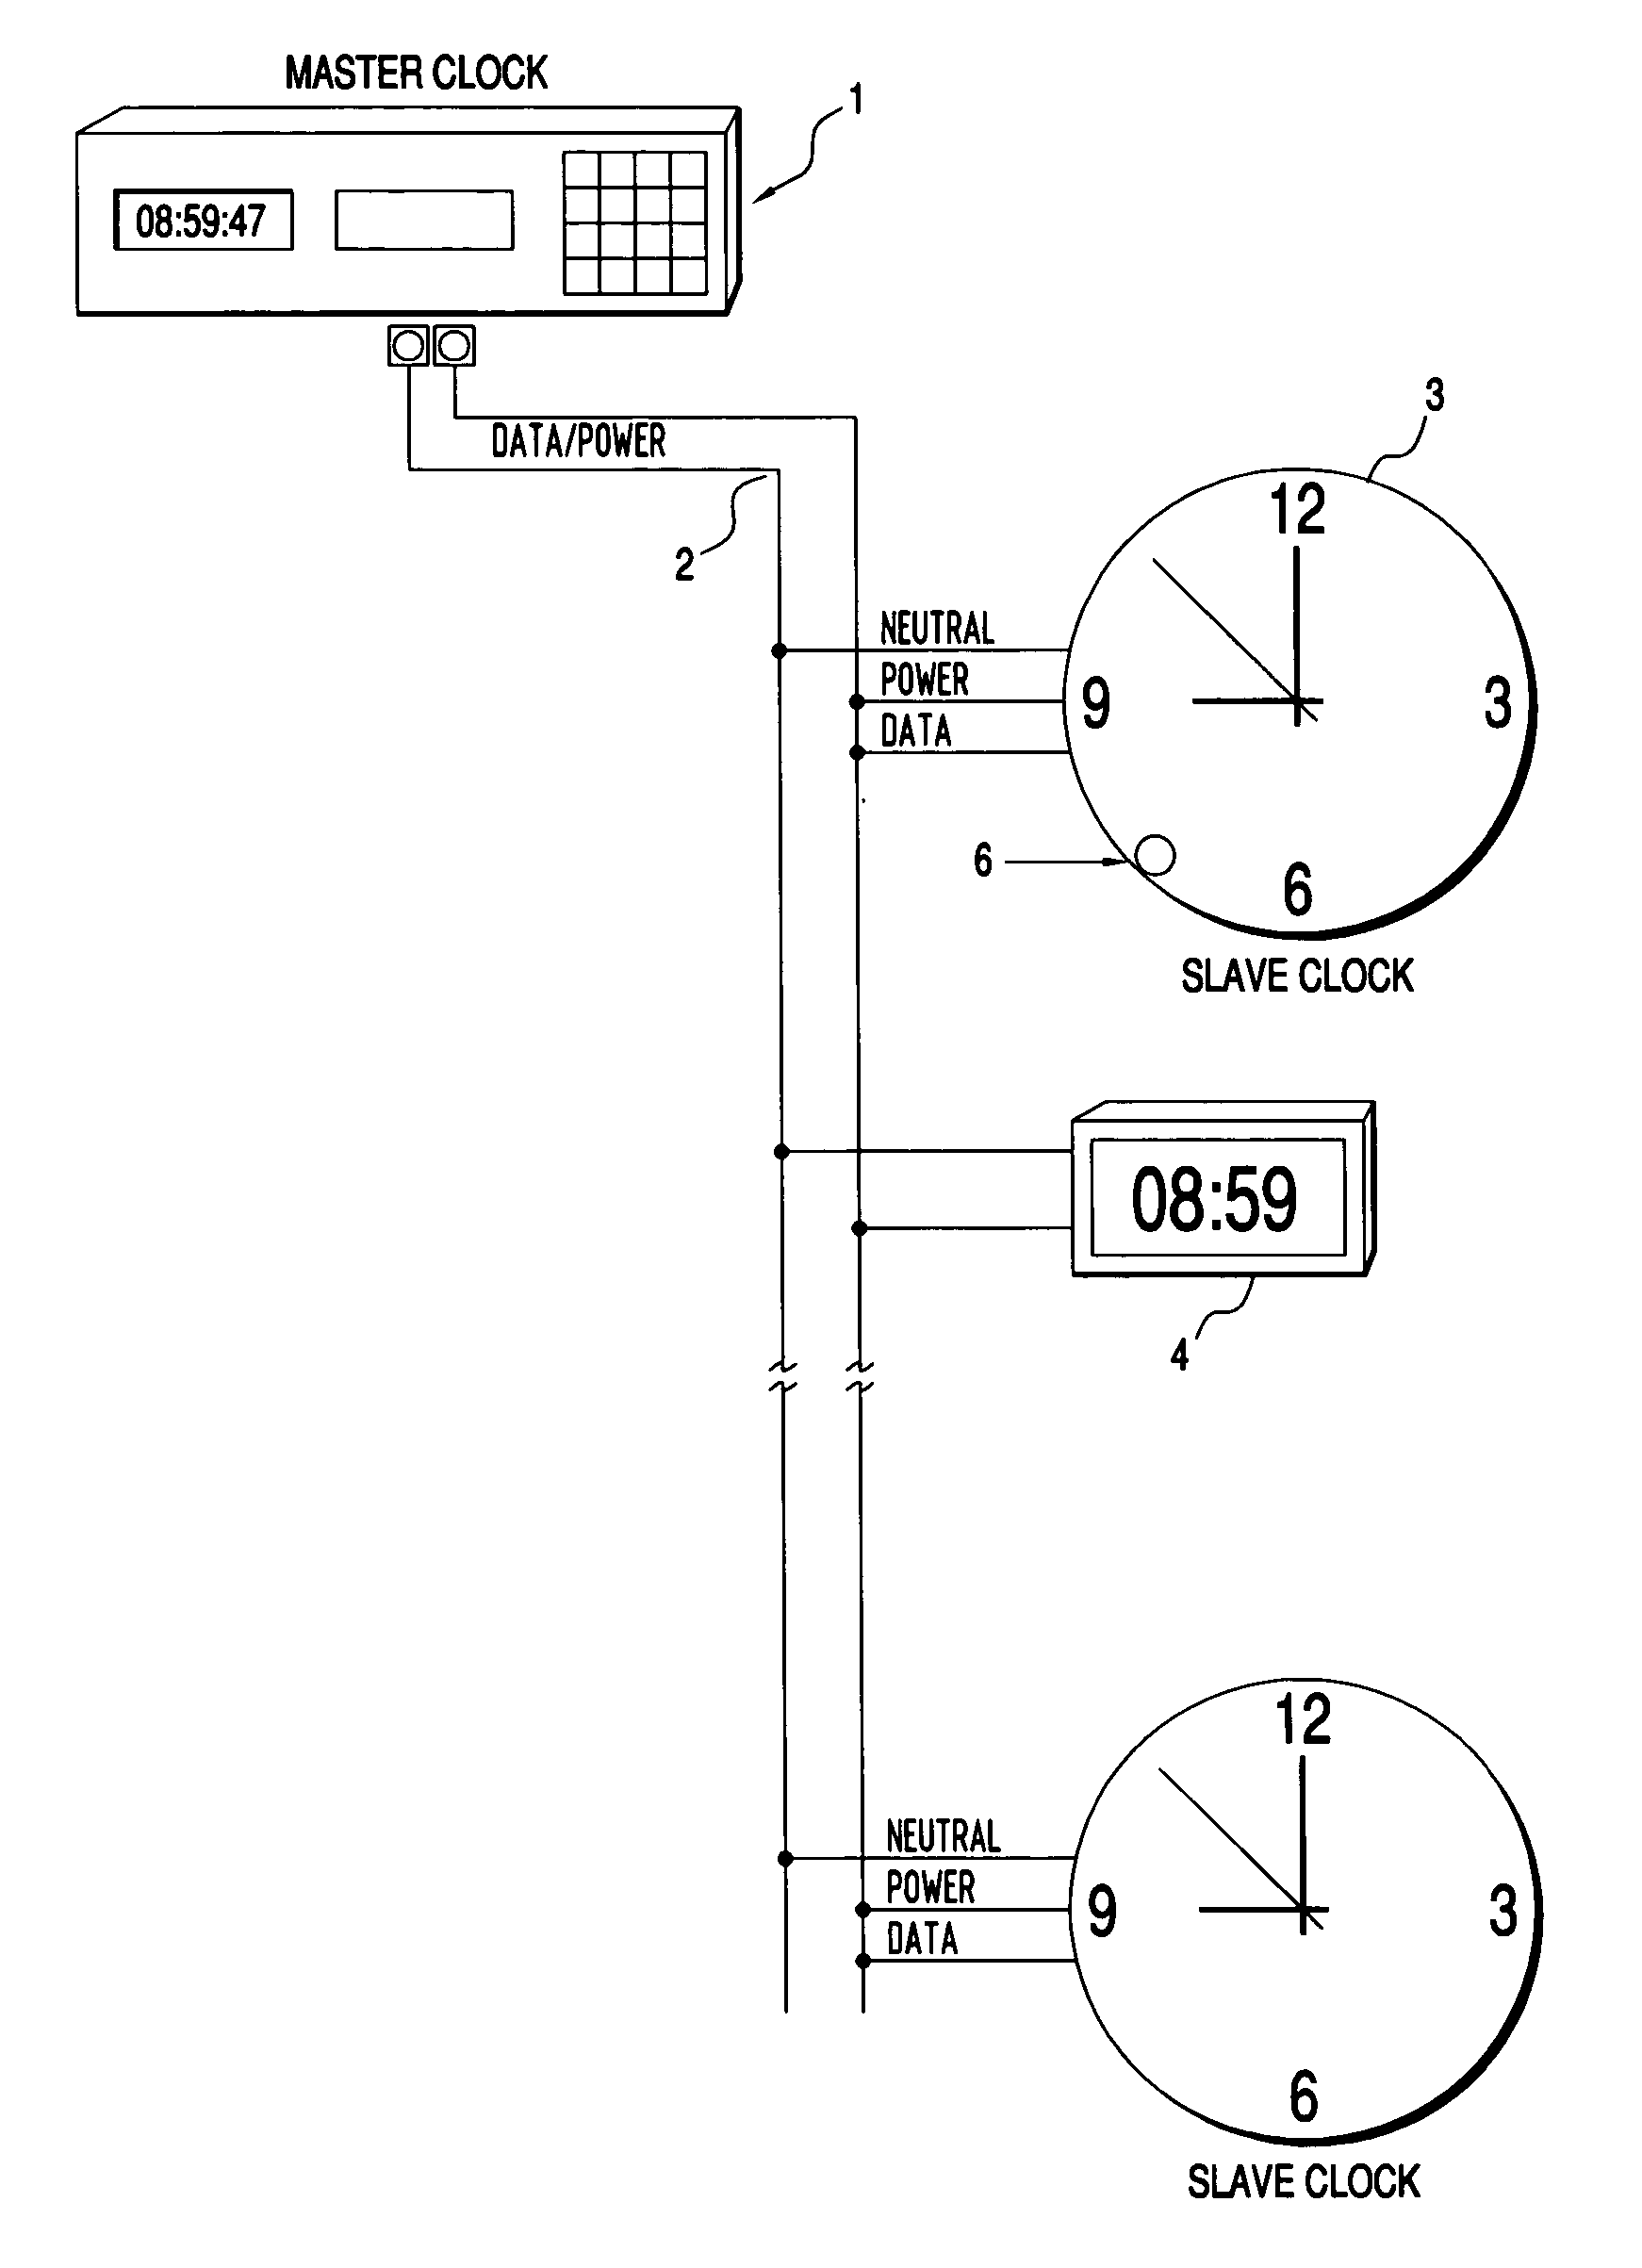 US20040165480A1 20040826 D00000 patent us20040165480 master slave clock system with automatic master clock system wiring diagram at eliteediting.co